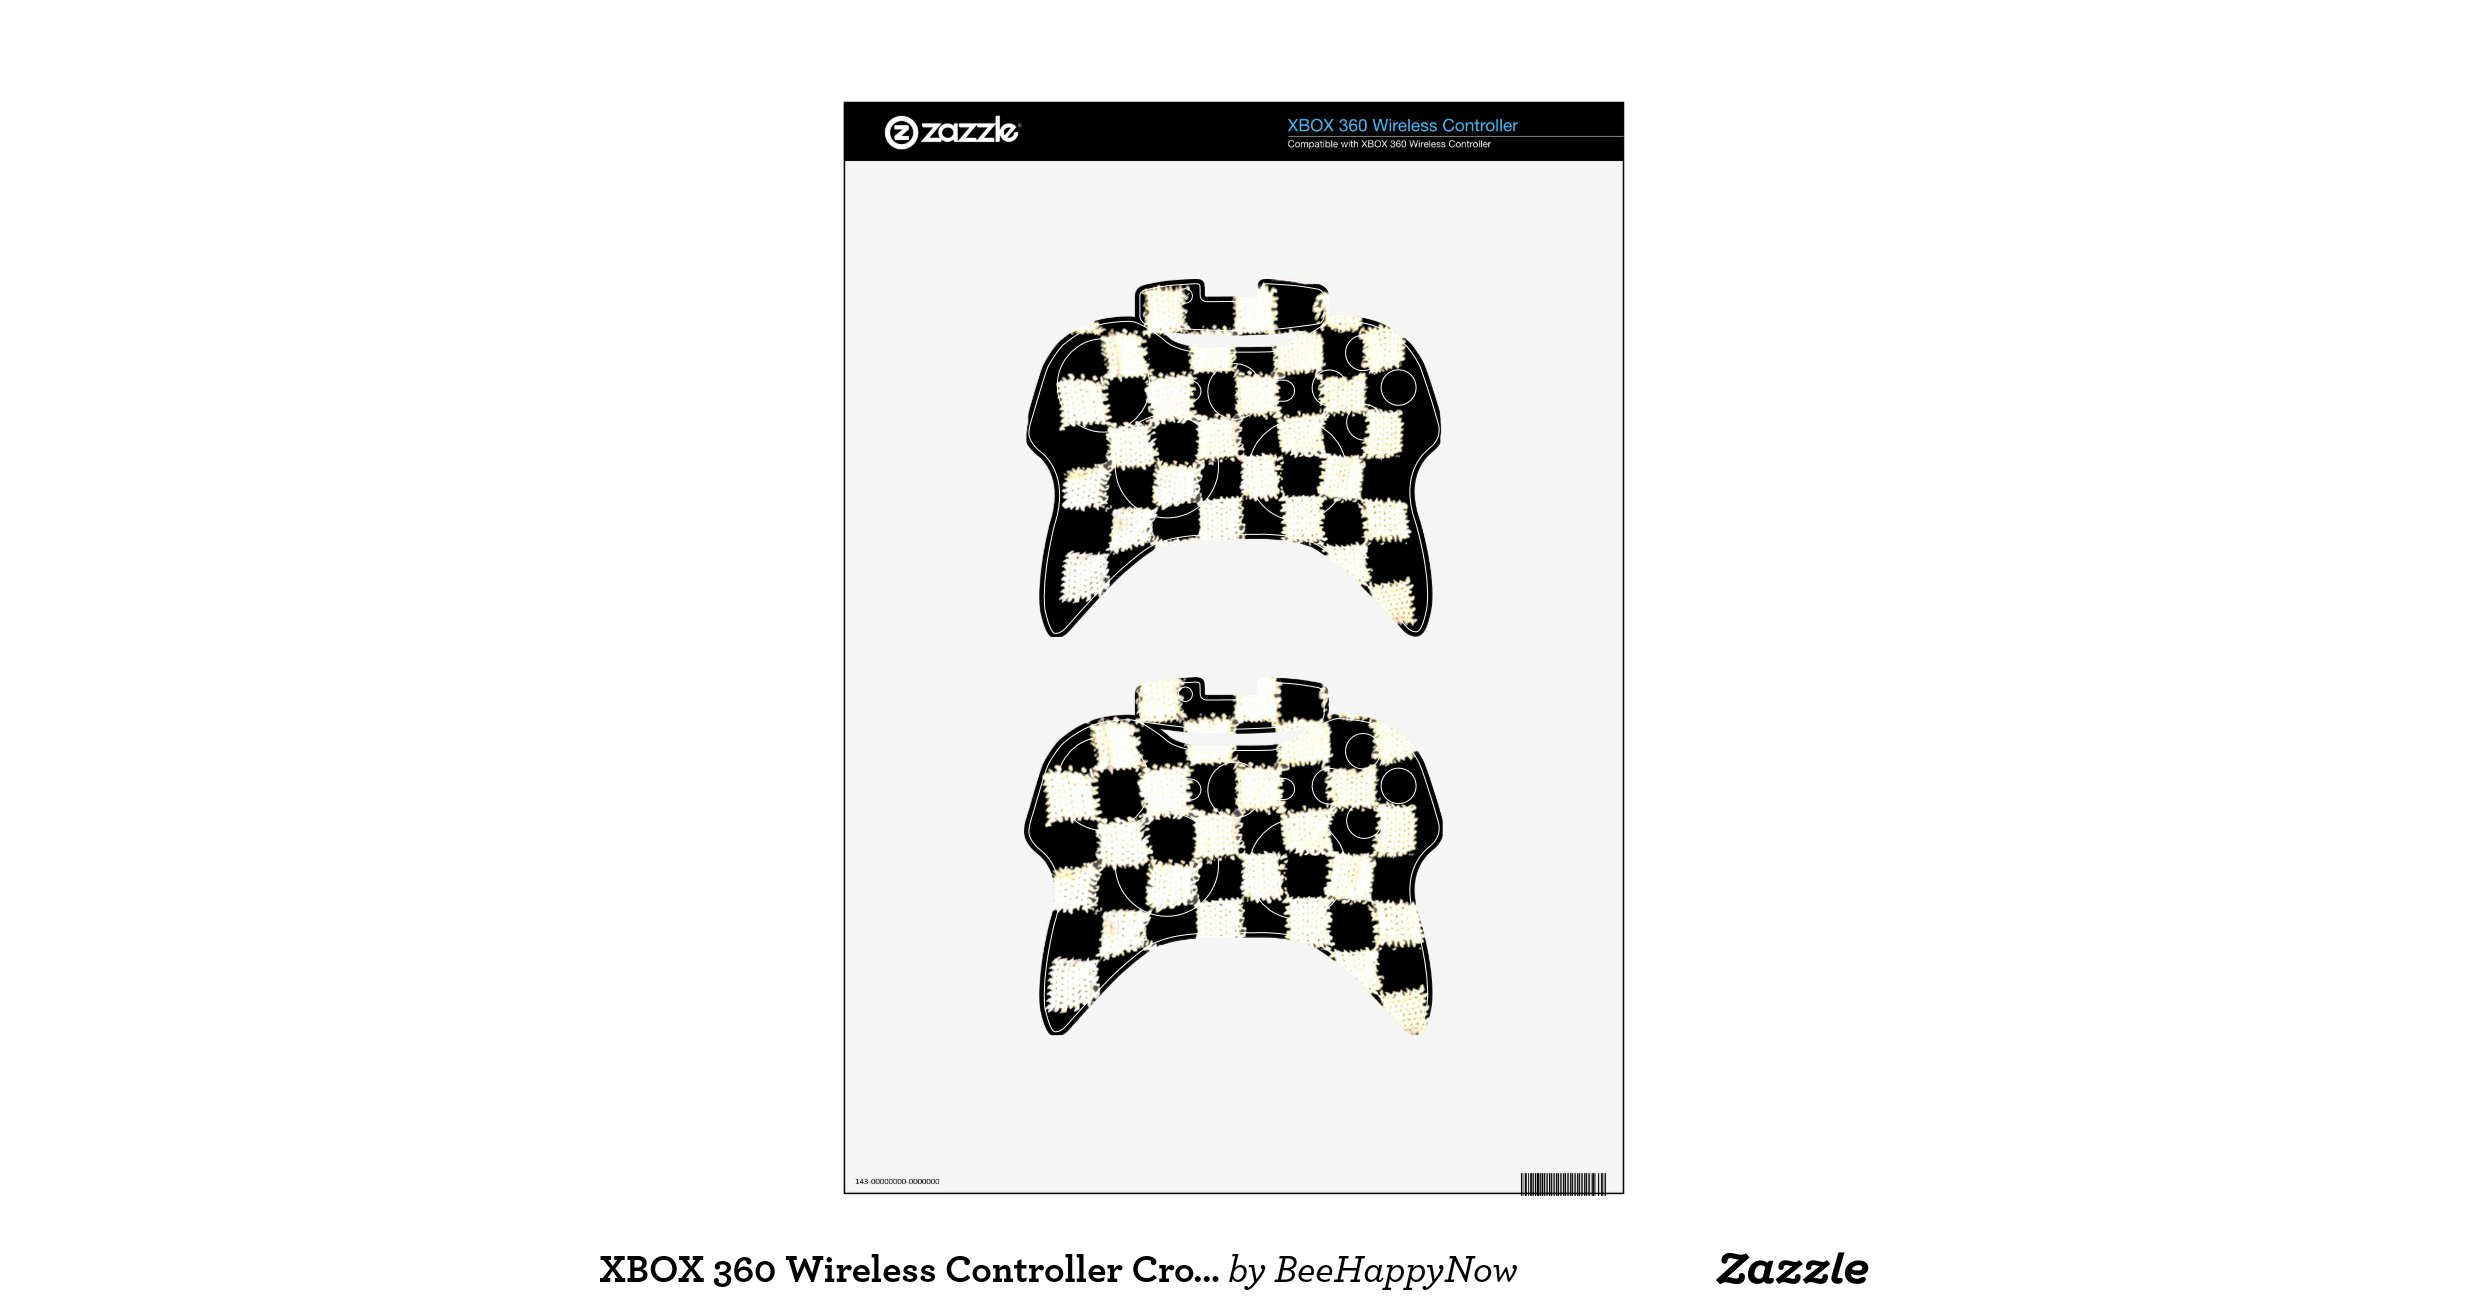 Xbox 360 wireless controller skin xbox 360 controller skins zazzle -  Crystal Dynamics Further Mr Fox Xbox 360 Controller Skins 134767373318152208 Further Firefighter Xbox 360 Controller Decal